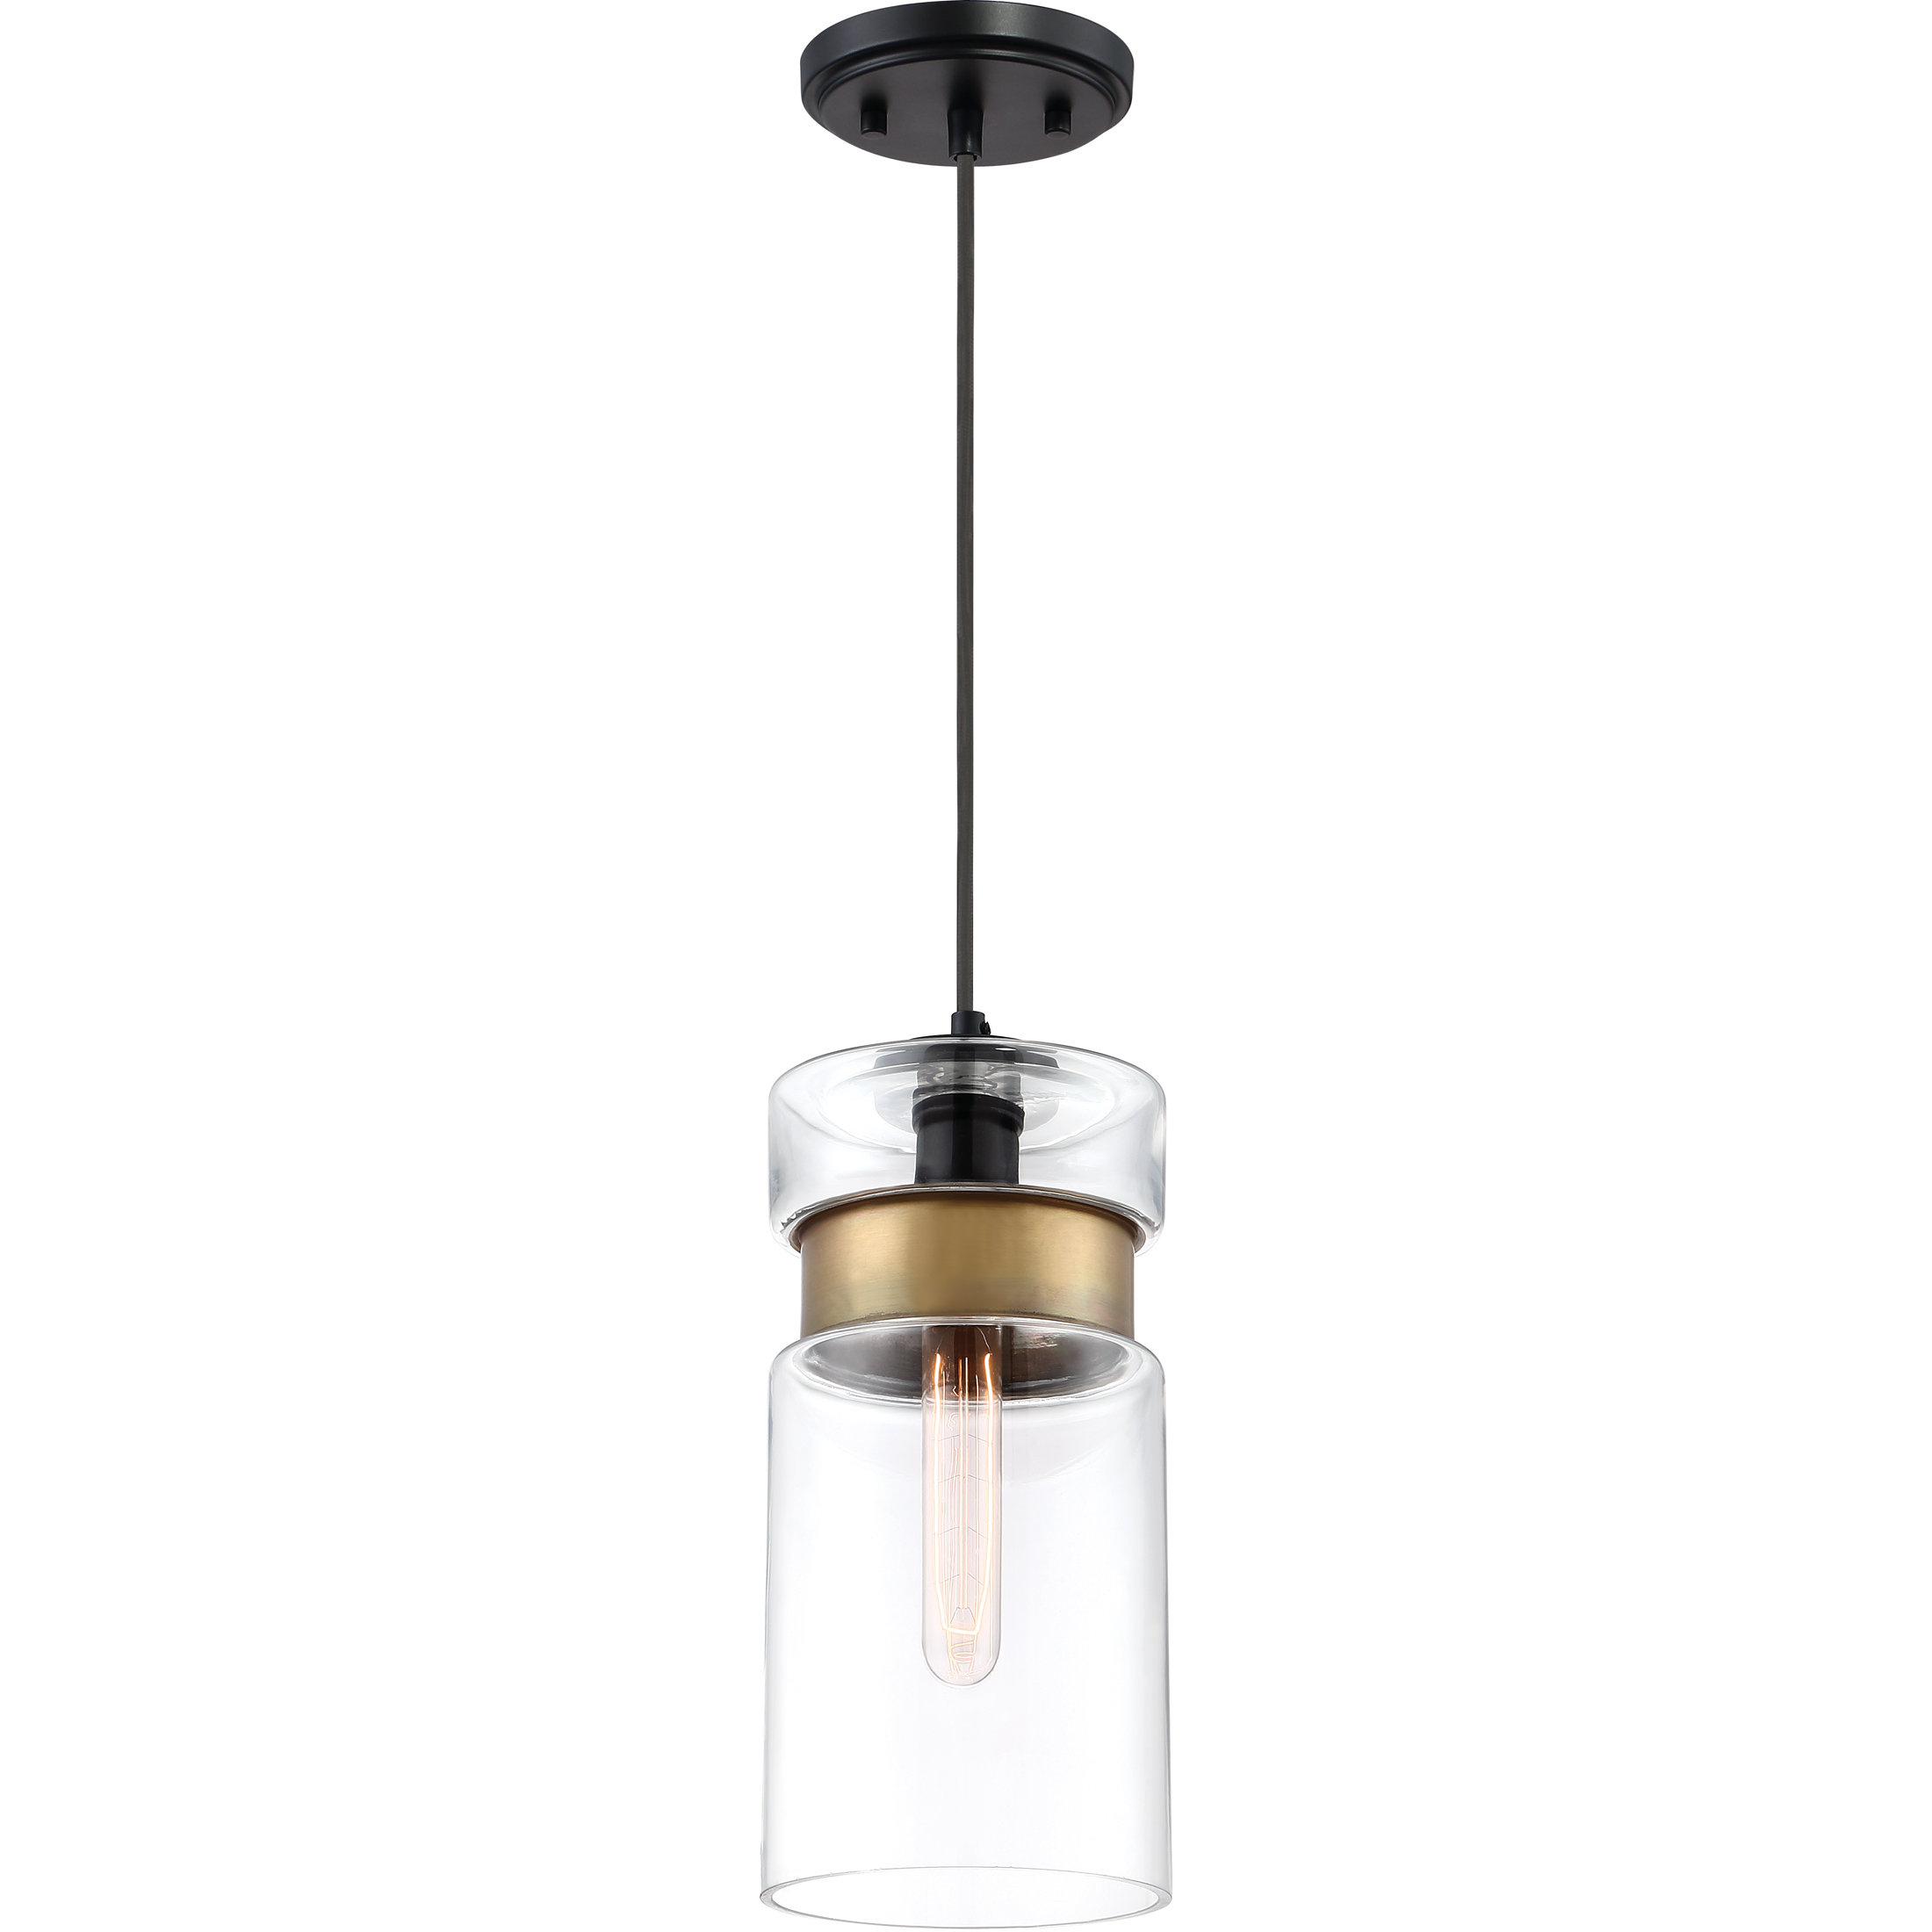 Sue 1 Light Single Jar Pendants With Latest Nagel 1 Light Cylinder Pendant (View 10 of 25)